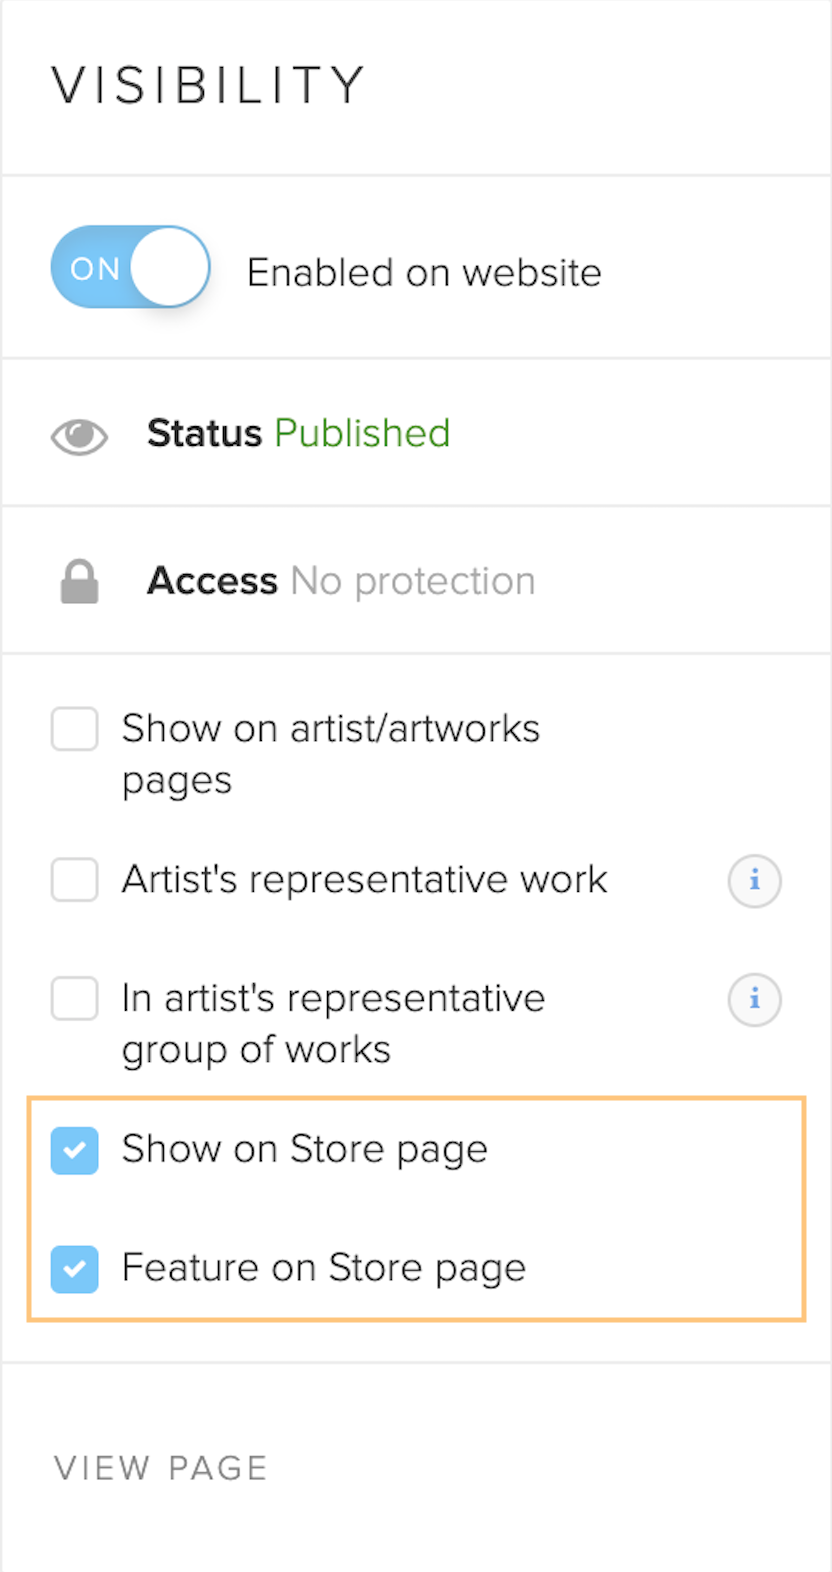 ArtworkRecord_Visibility.png